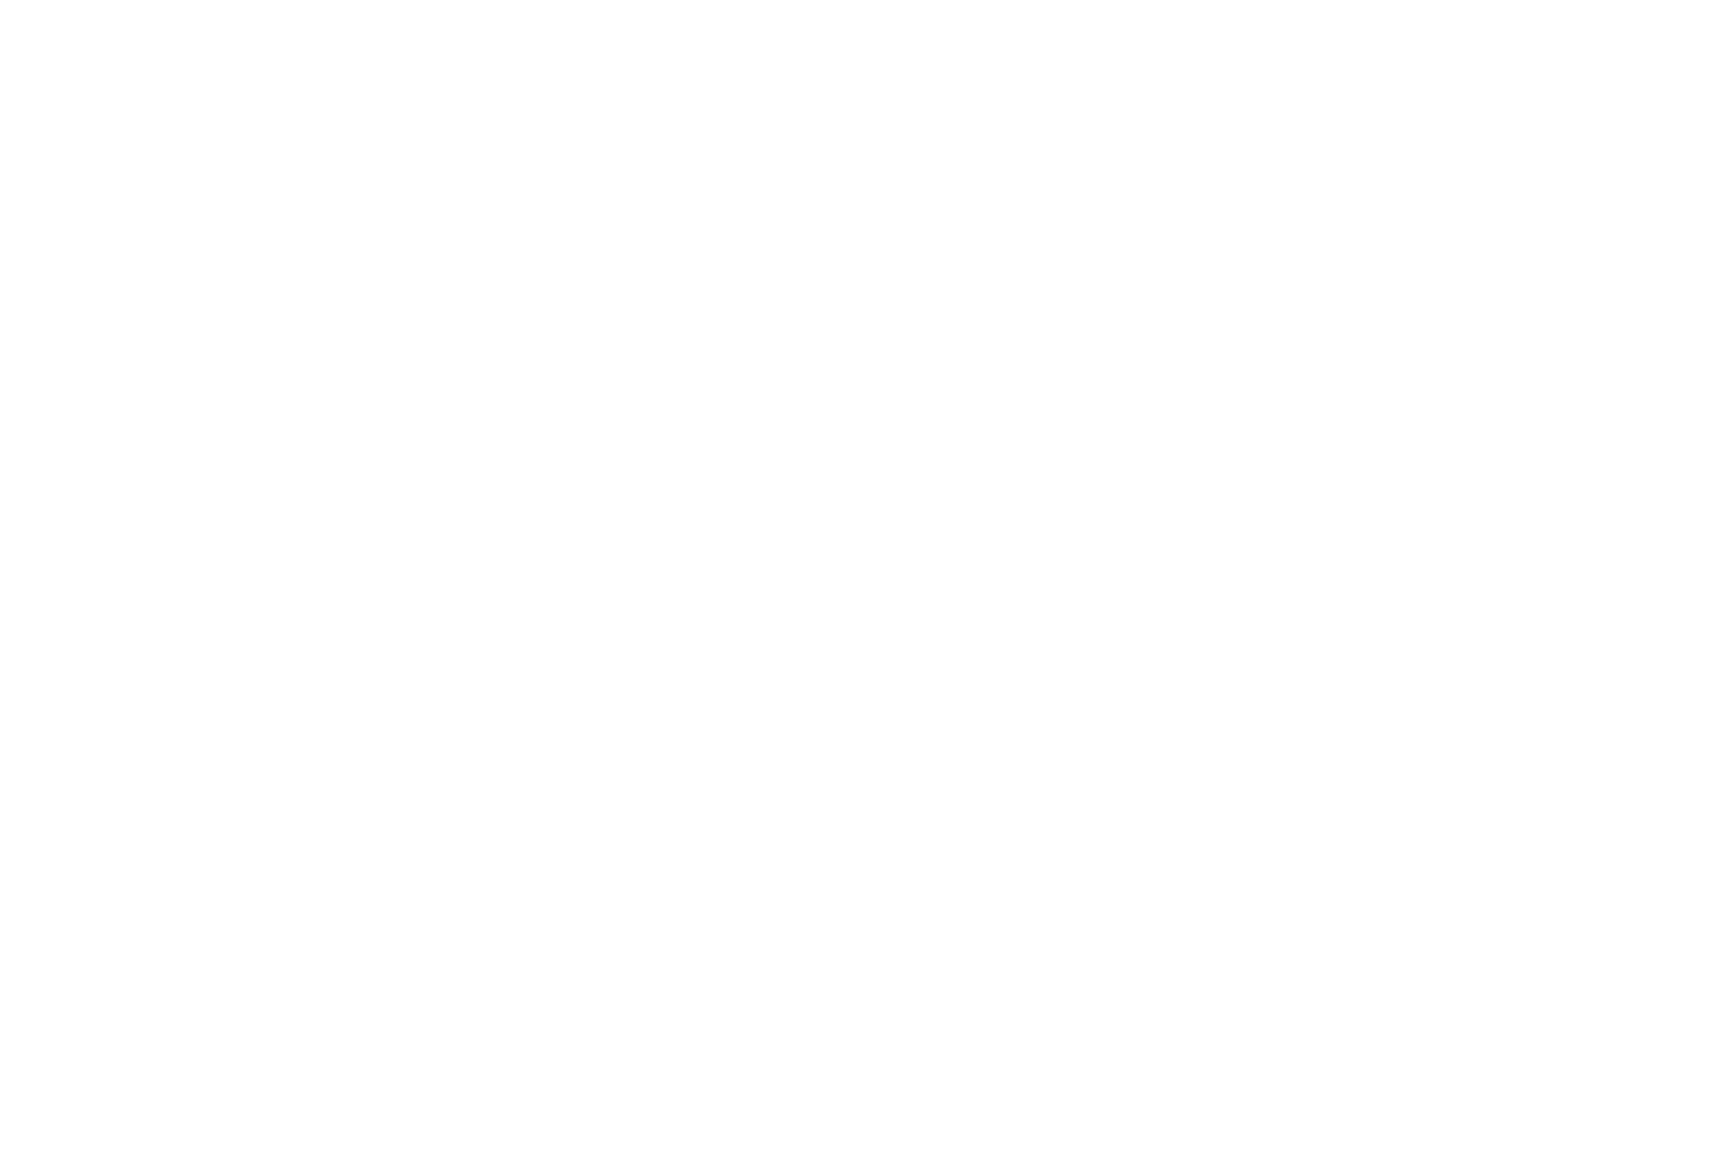 OFFICIAL SELECTION - Homegrown Film Festival - 2013.png